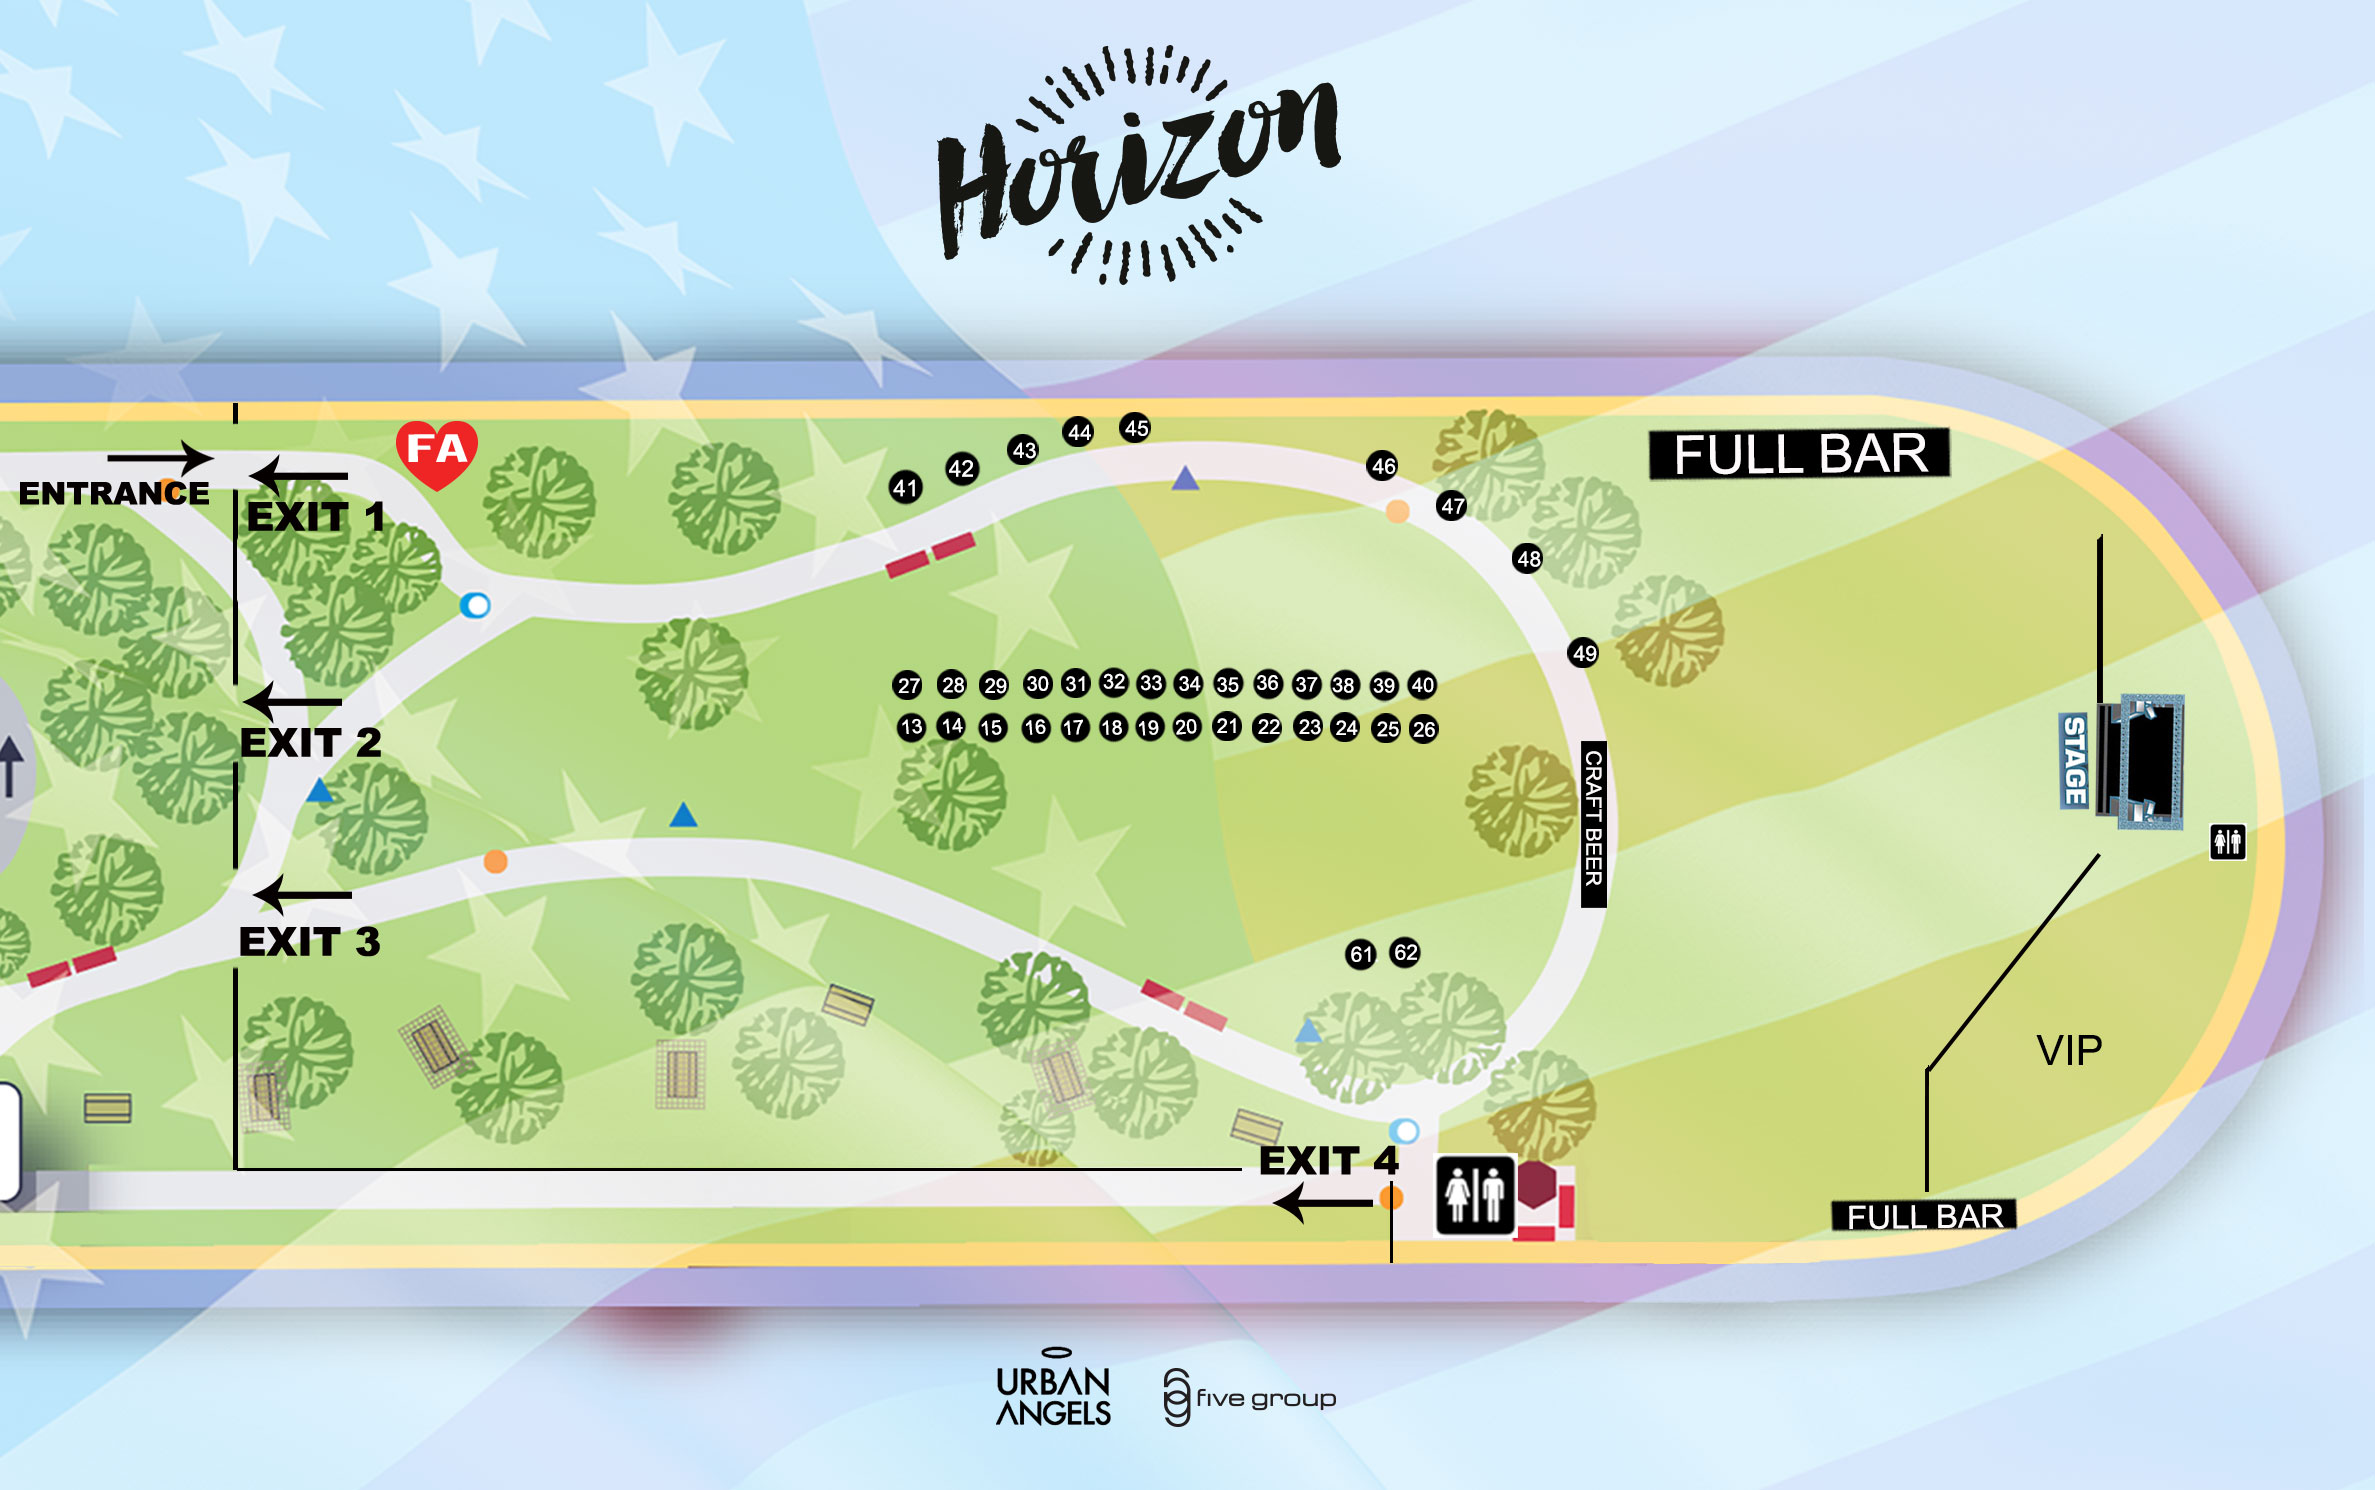 Venue Map - Horizon Music Festival - San go | July 6th, 2019 on paradise village map, lakeview village map, phoenix village map, sand village map, broadway at the beach map, seaport district san diego, mission trails regional park map, newton village map, manhattan village map, road village map, mystic village map, forest village map, torrey pines state reserve map, desert village map, north county fair map, seaside village map, marina village map, east village map, legacy village map, american village map,